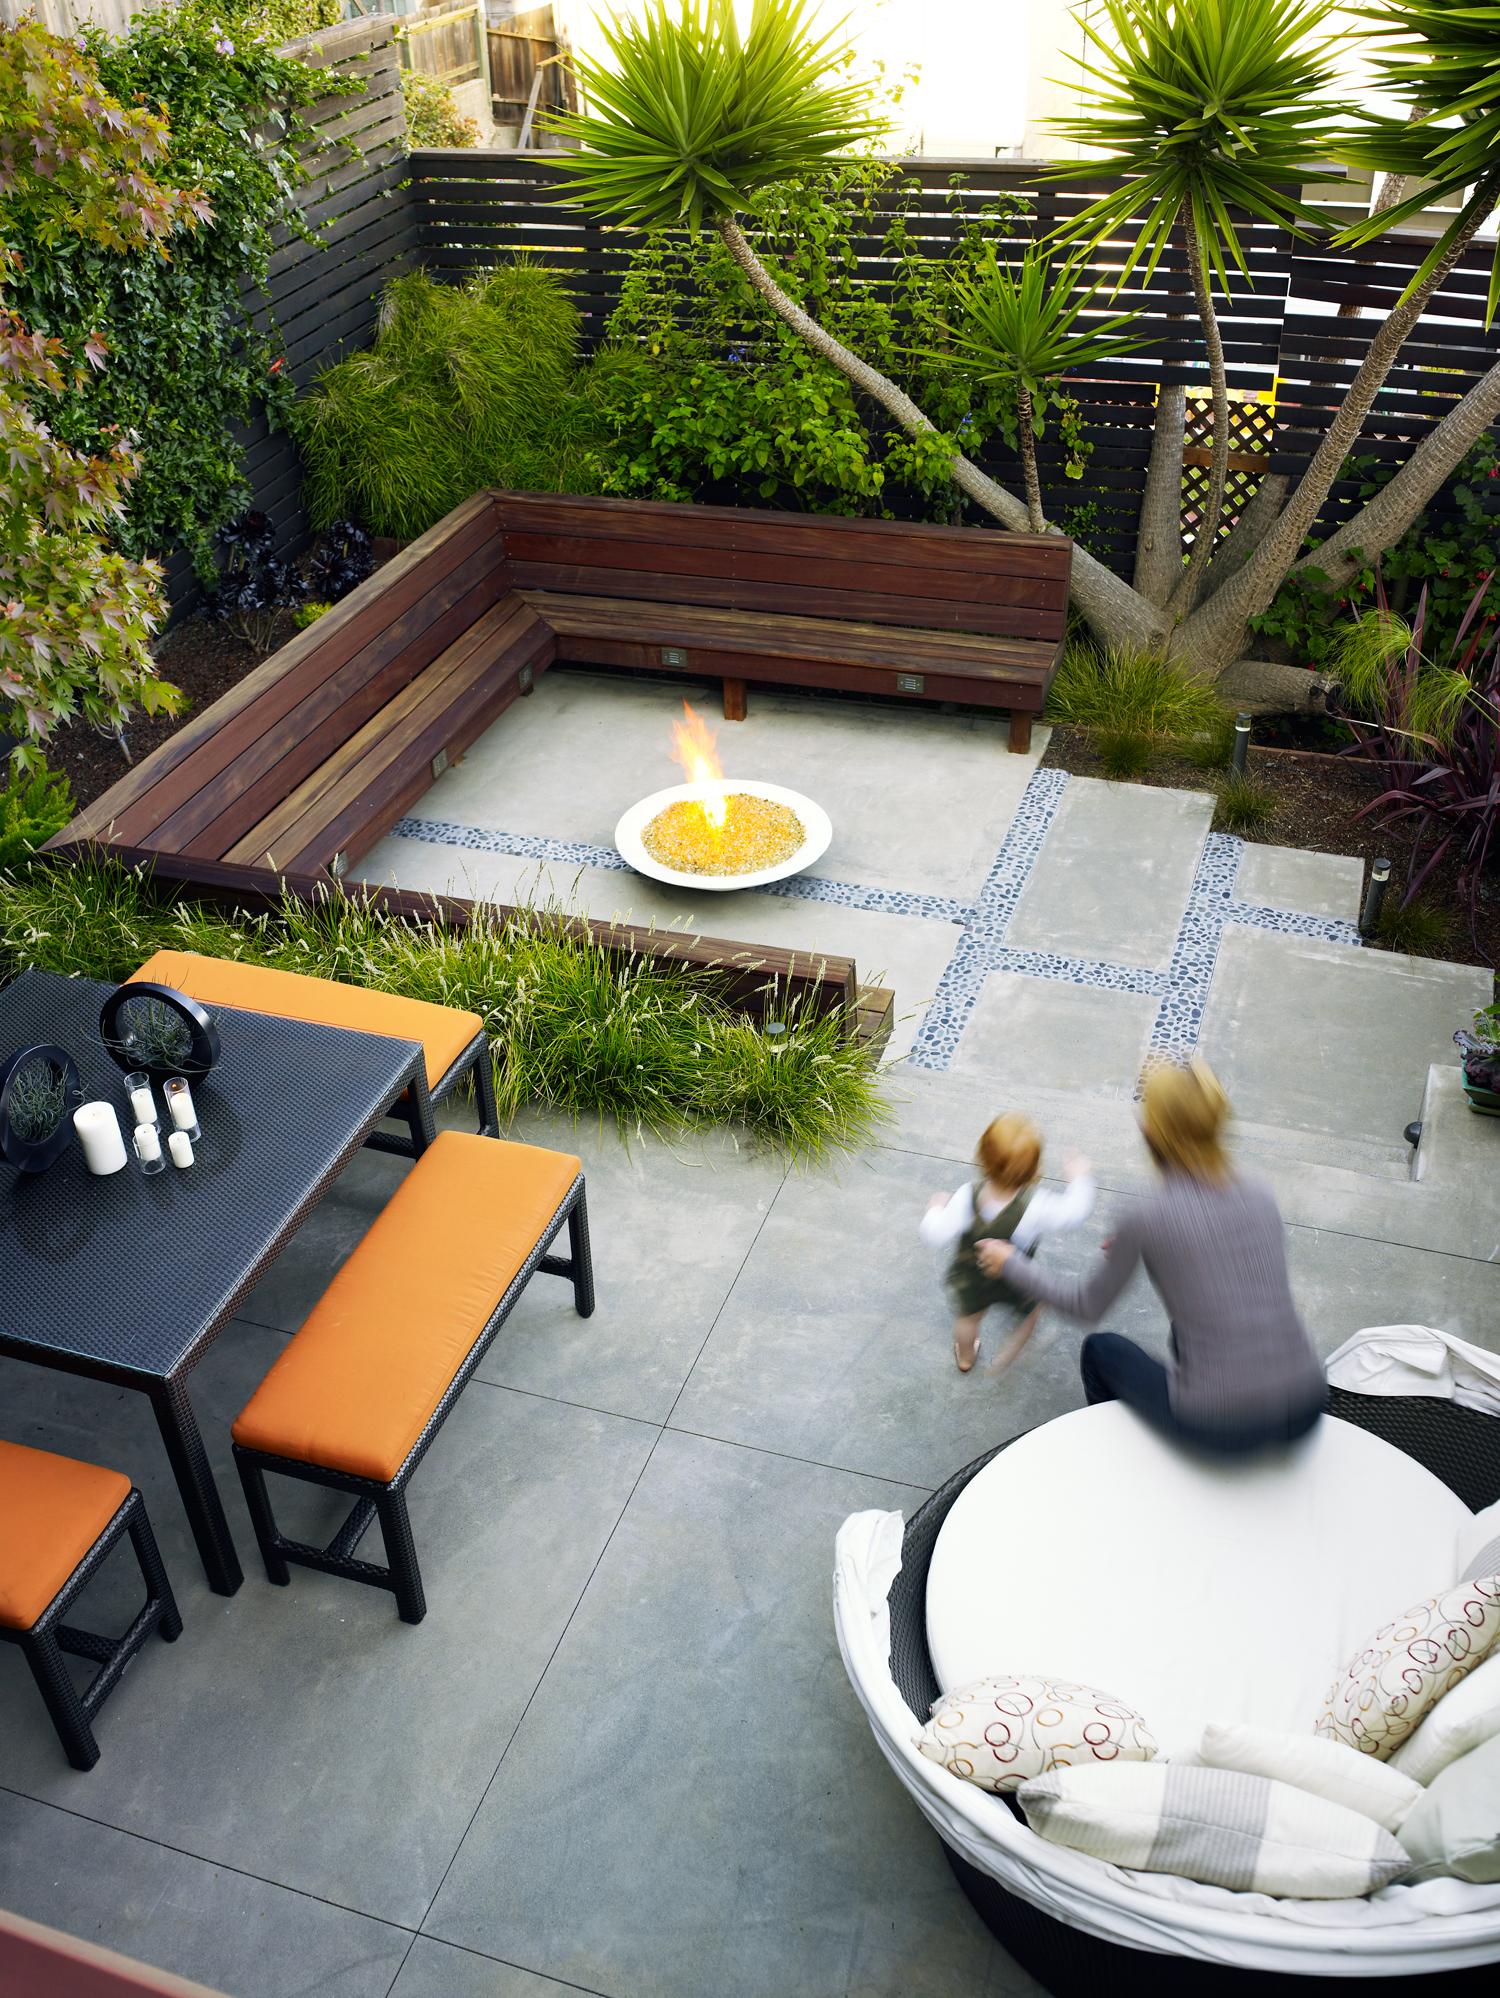 Is your yard or garden small on space? Get big ideas for ... on Small Landscape Garden Ideas id=25401